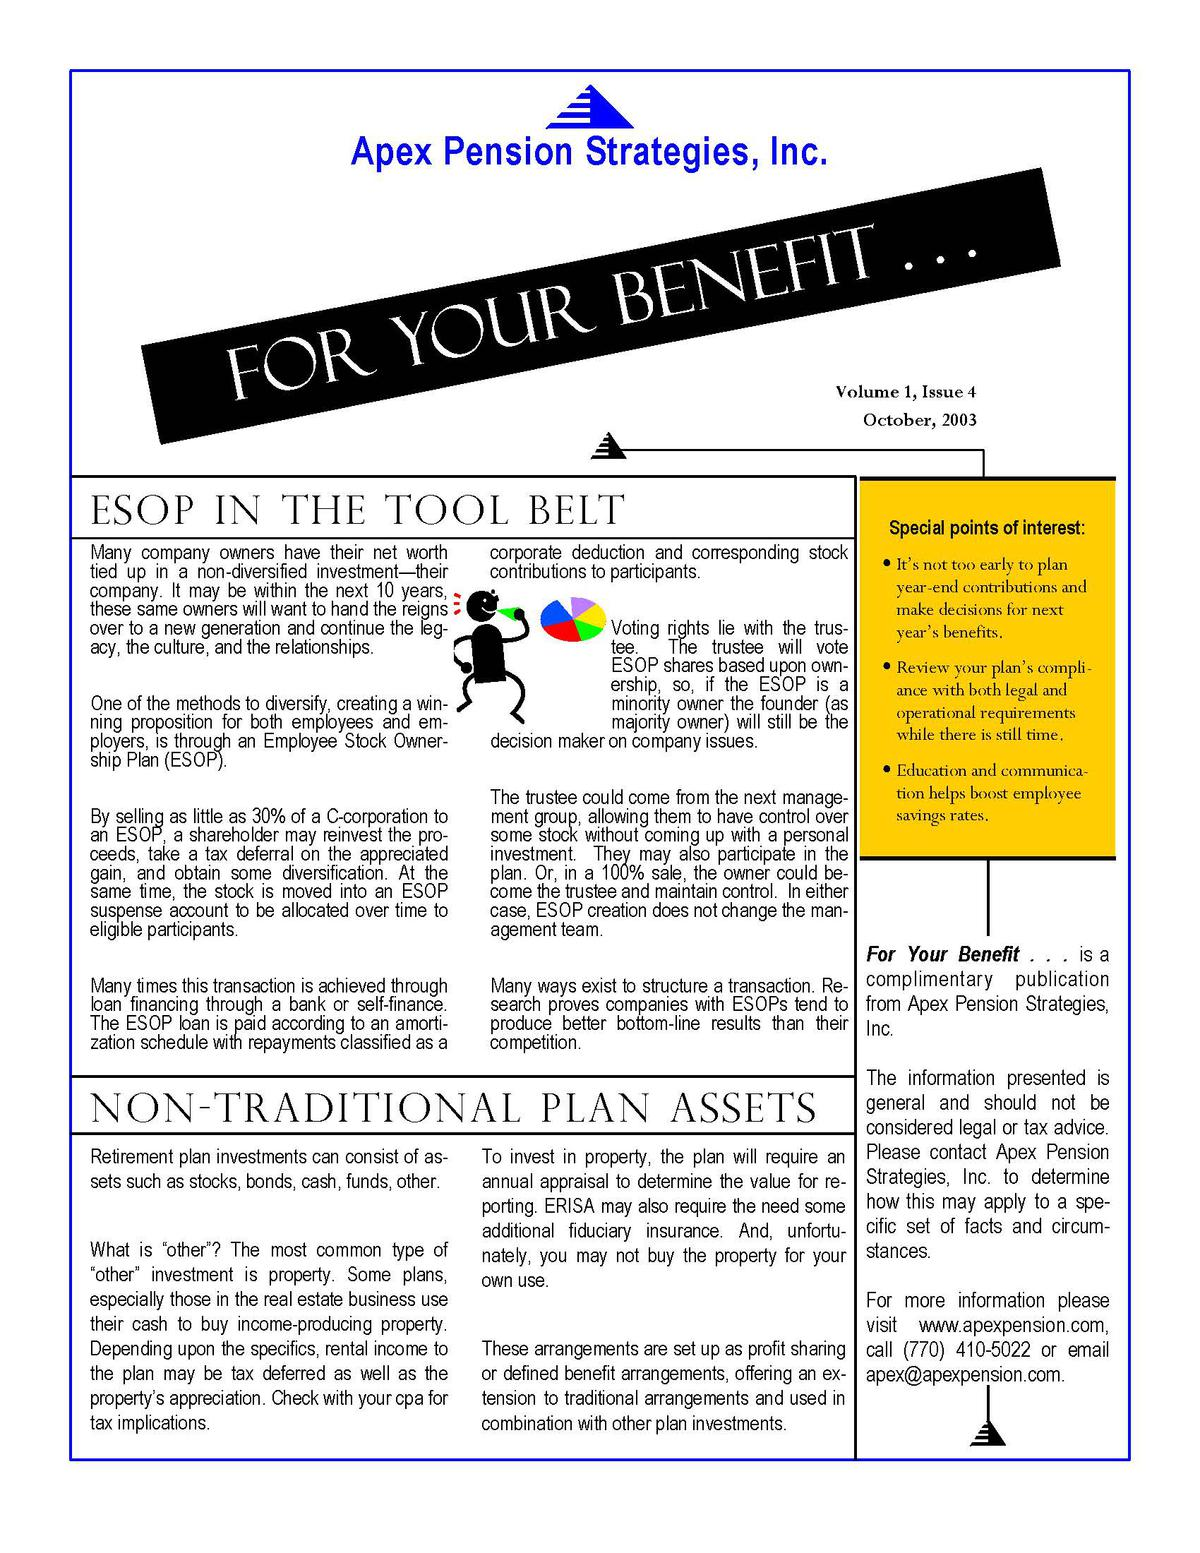 Non-Traditional Plan Assets